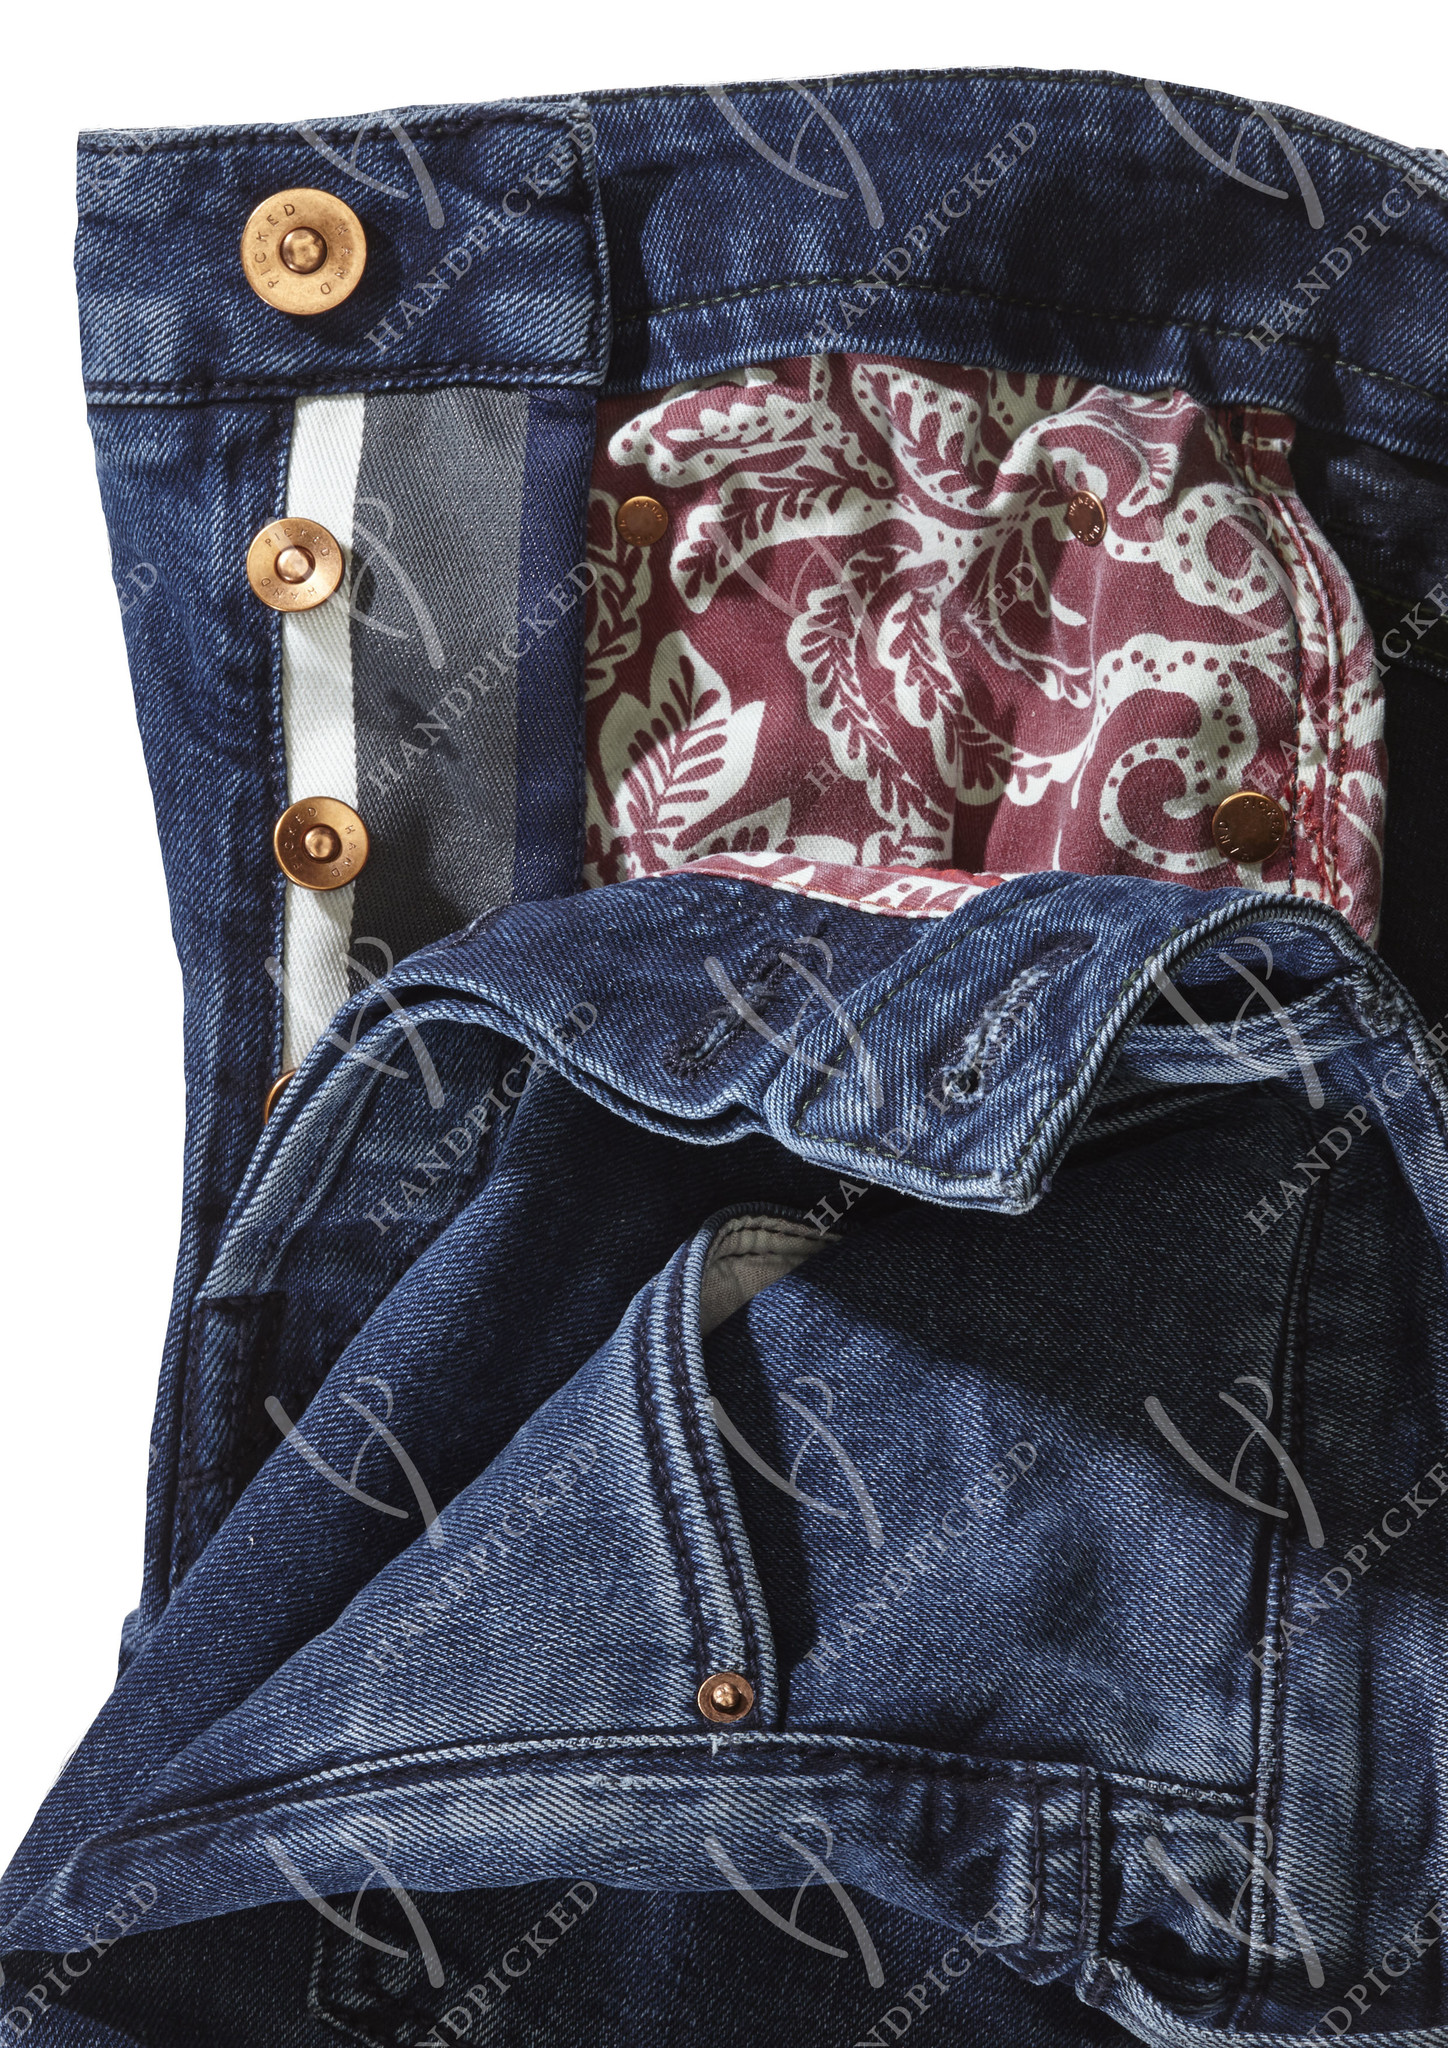 Handpicked jeans by The Orange Roermond